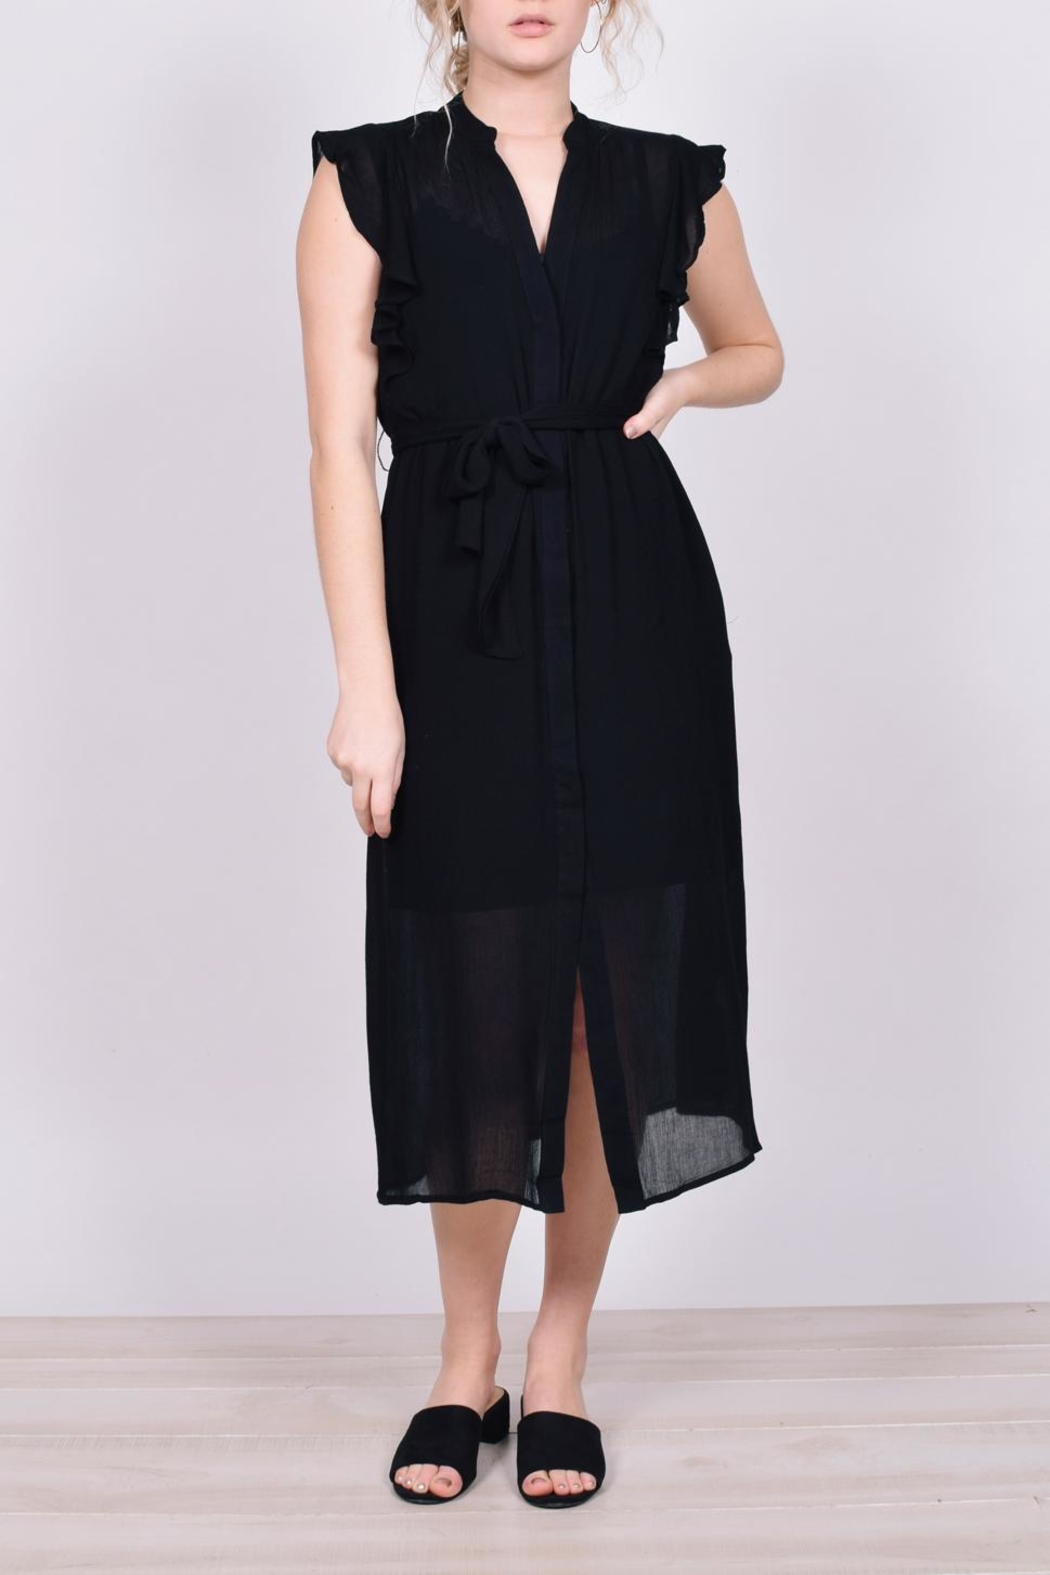 Unbranded Button-Down Midi Dress - Main Image